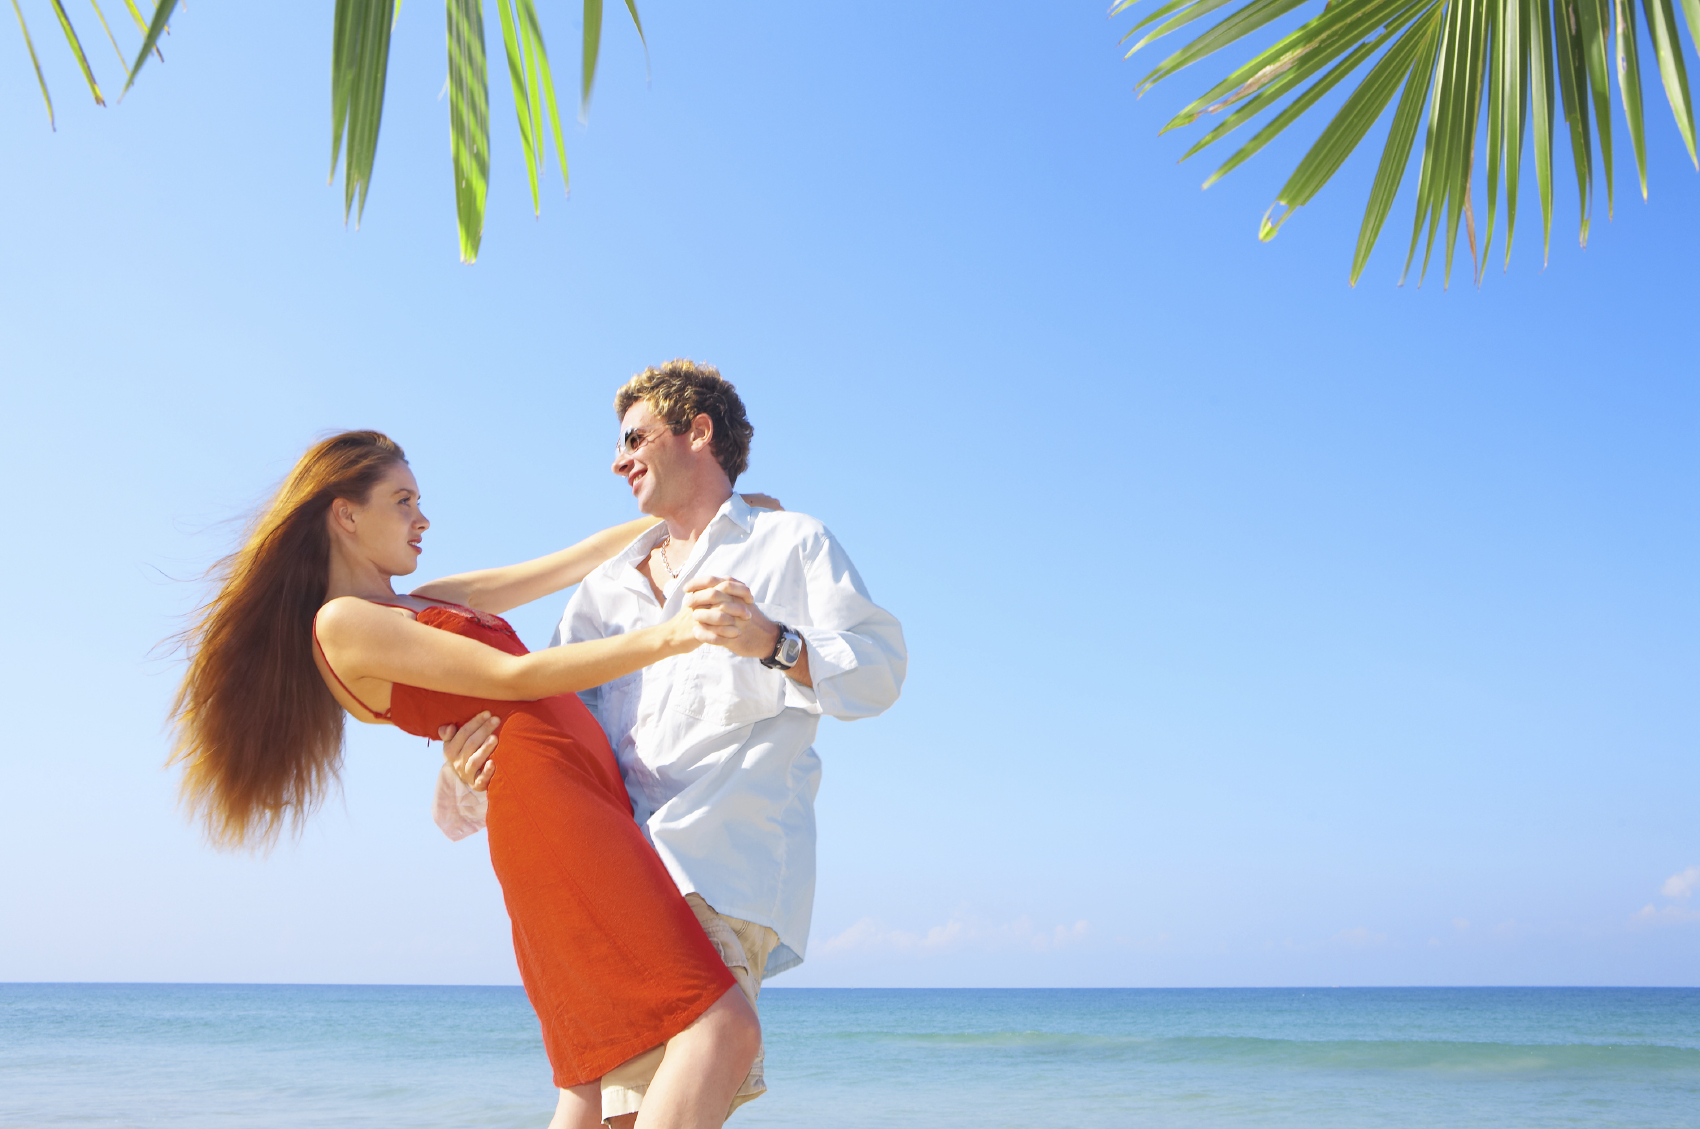 Taking adult dance lessons before your tropical spring break vacation can be a great way to get excited for those warm, romantic nights.